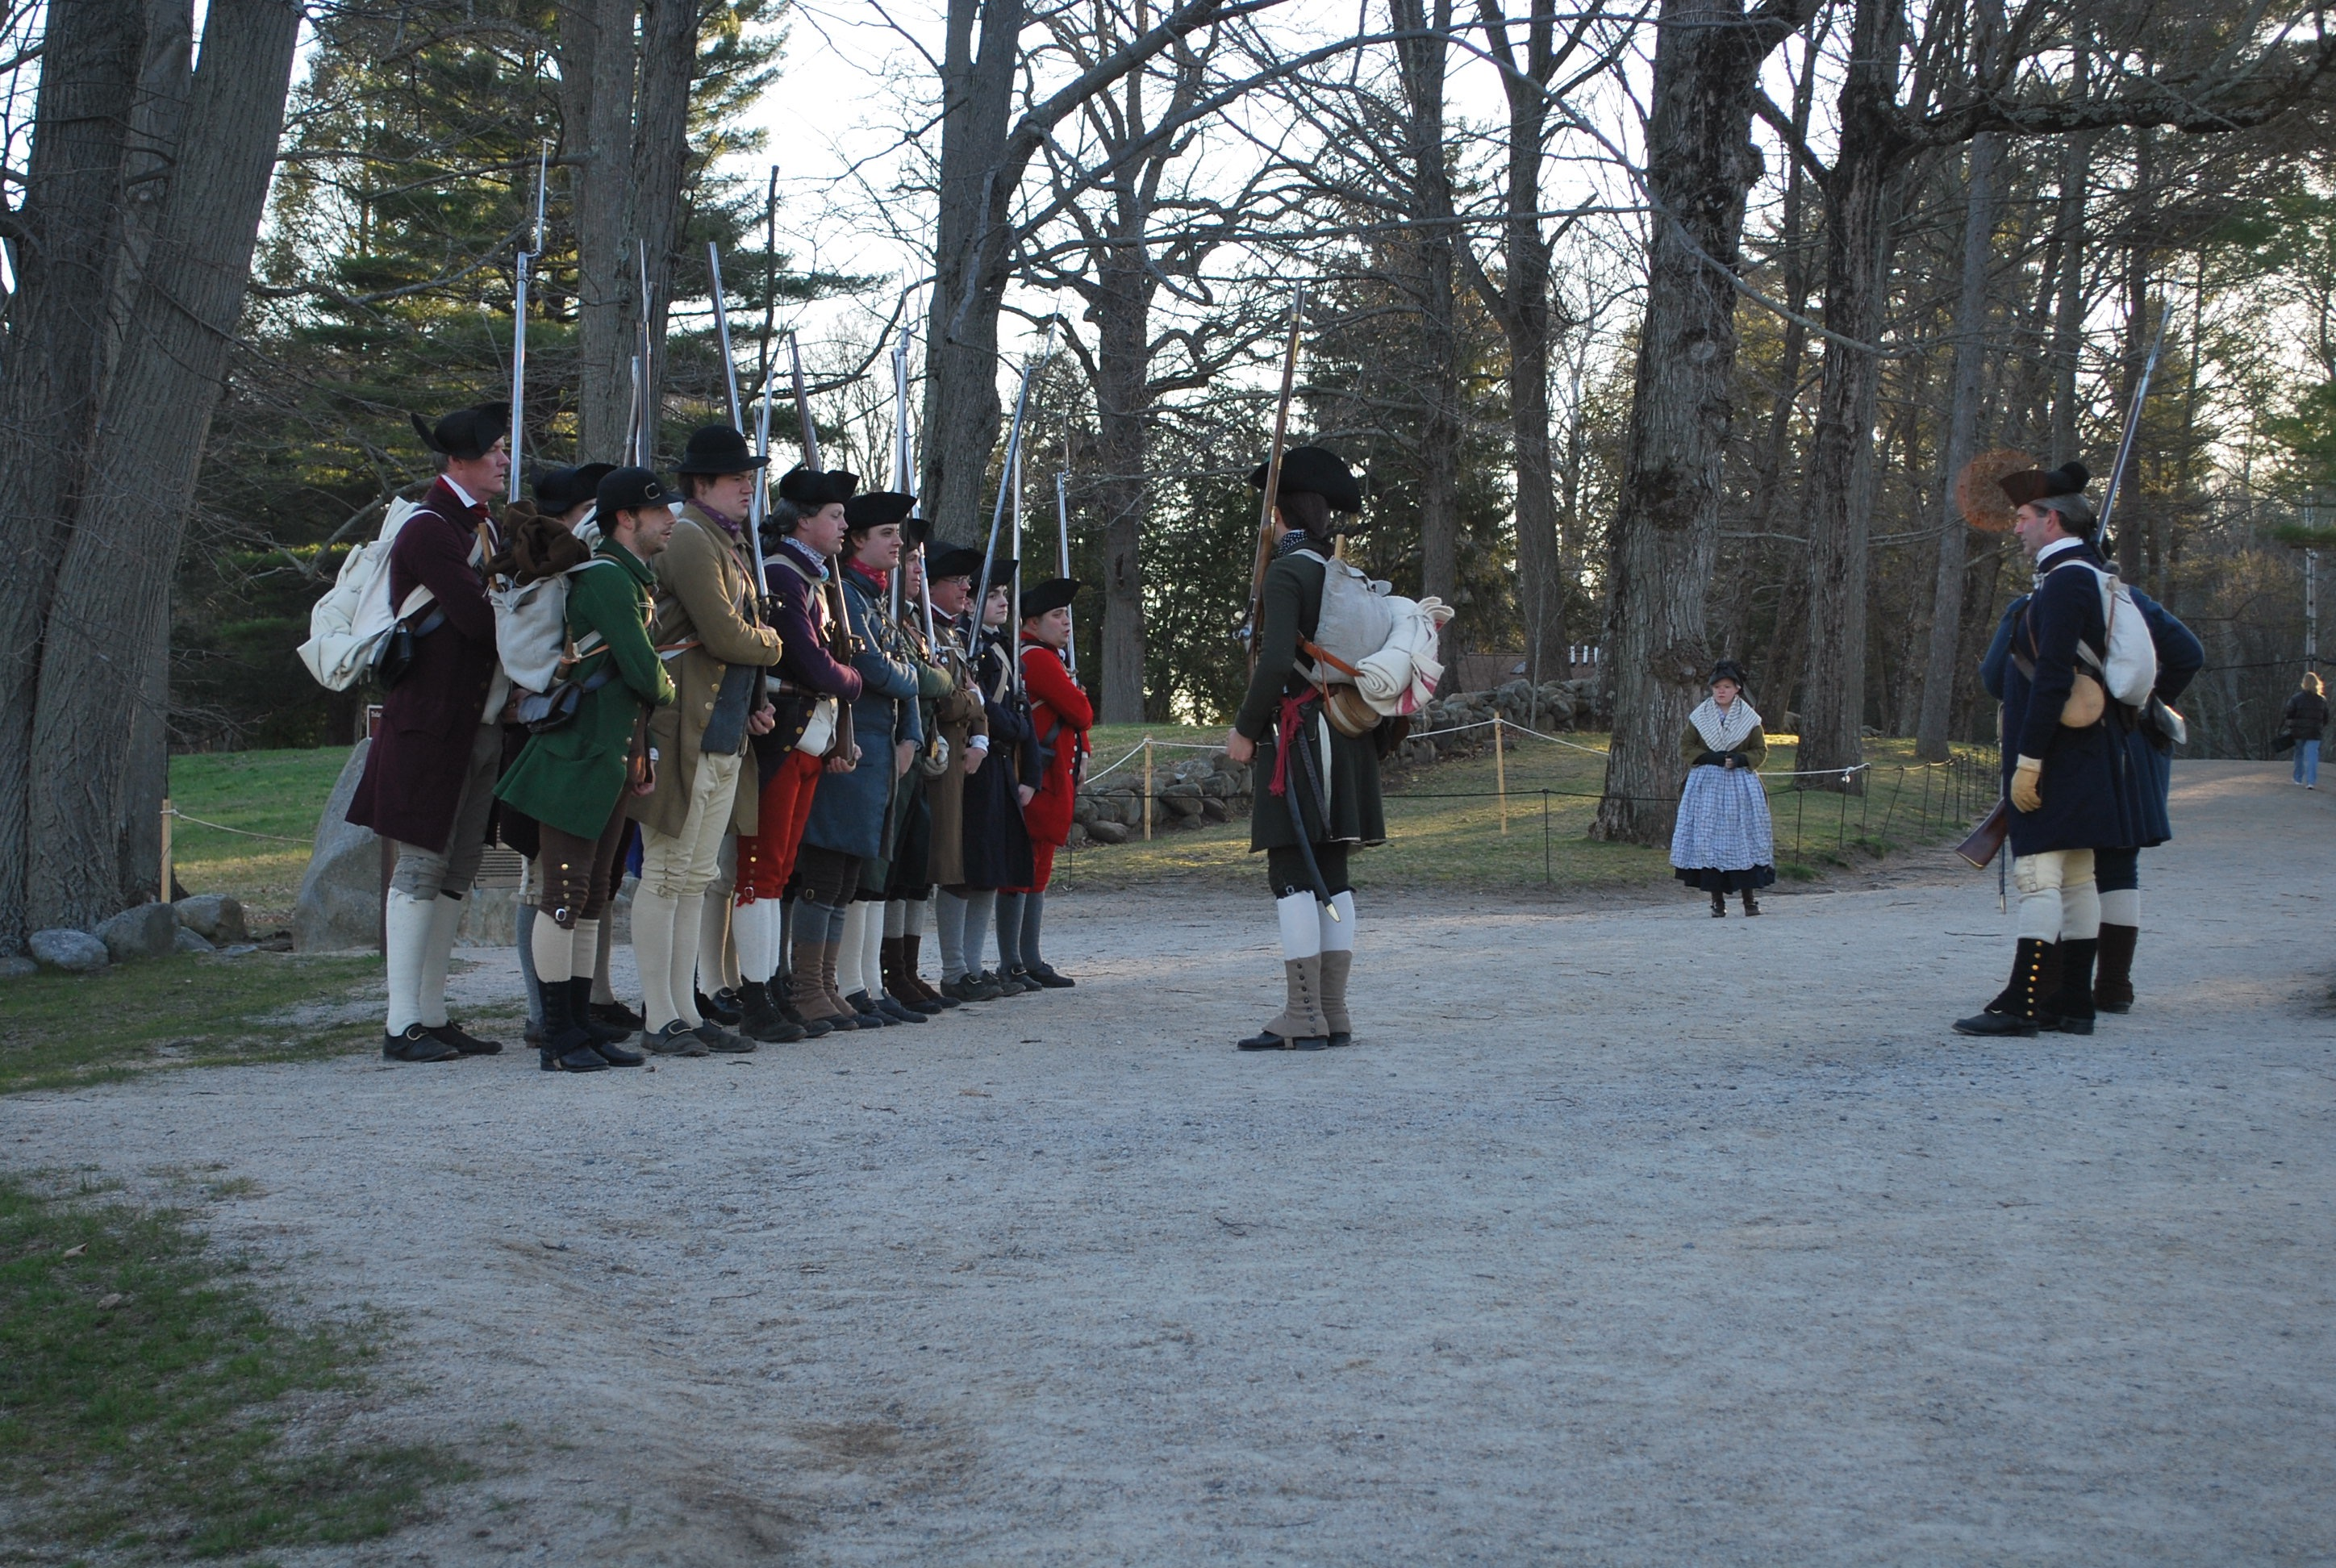 Patriot's Weekend at Minute Man National Historical Park, featuring Captain Brown's Company.